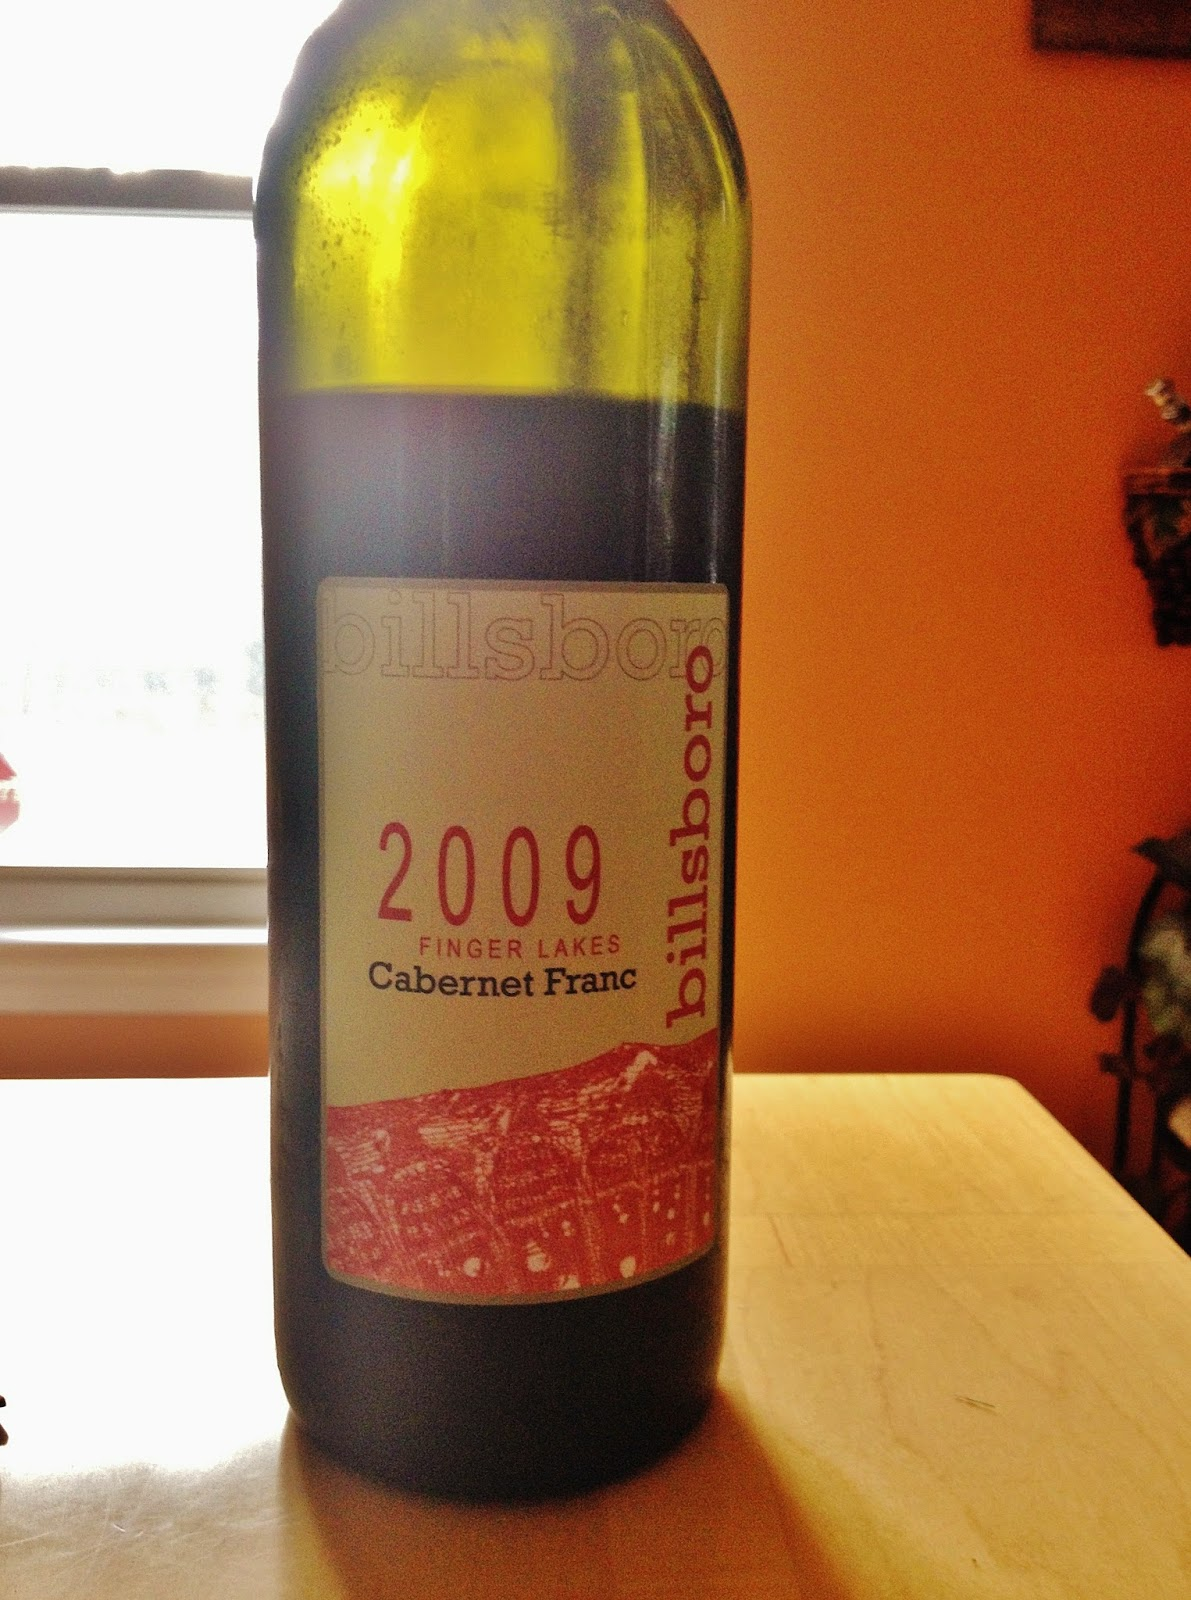 2009 Billsboro winery Cabernet Franc